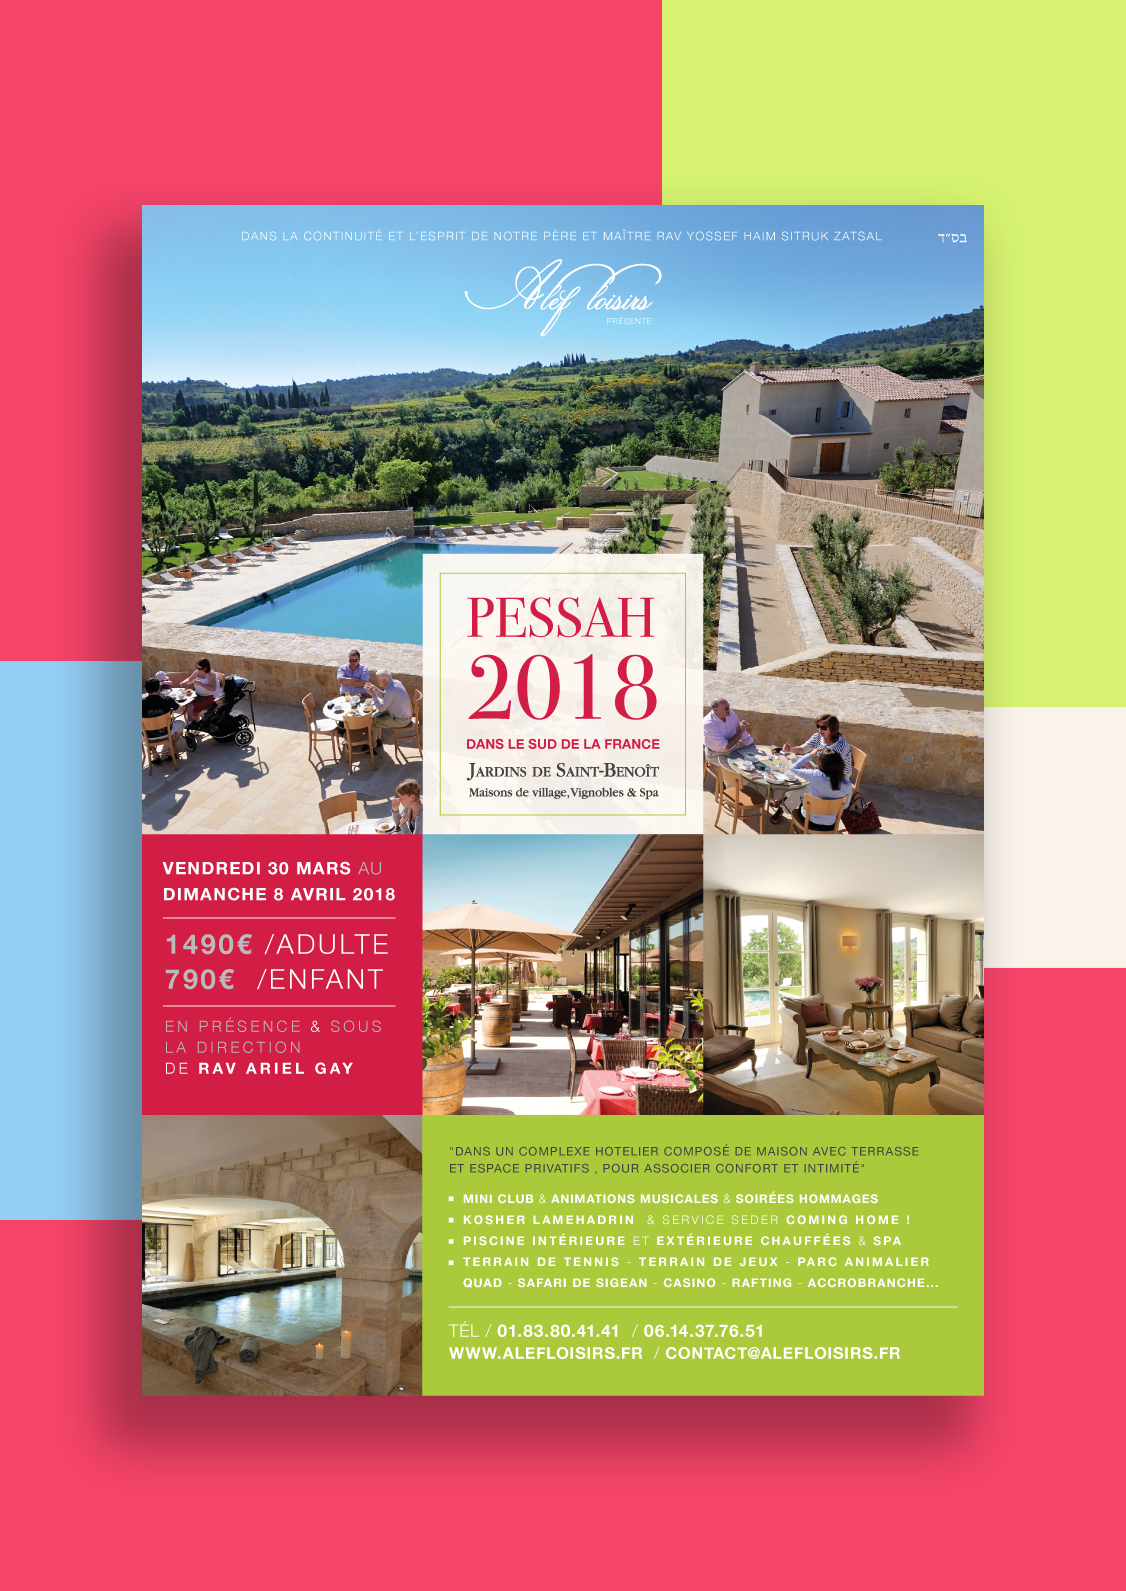 Affiche - Flyer - Holidays On Behance destiné Les Jardins De St Benoit Spa